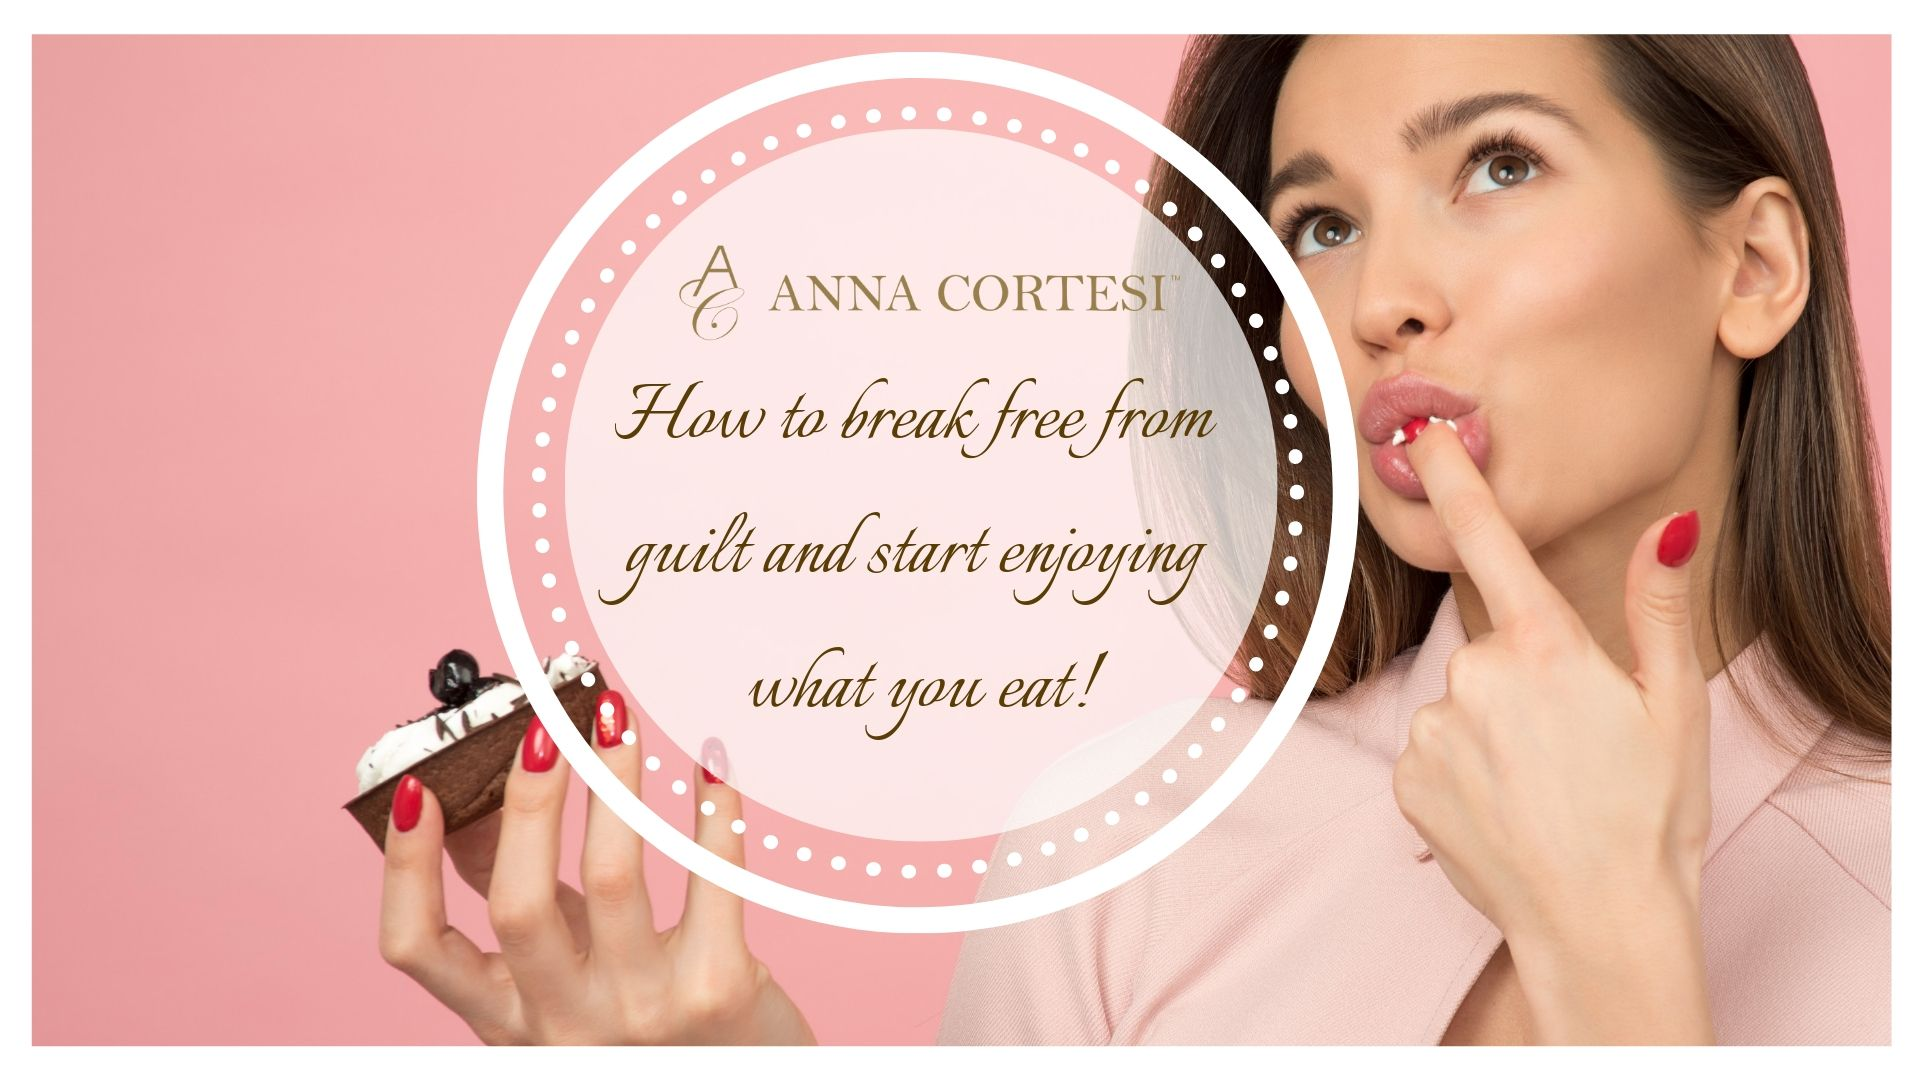 How to break free from guilt and start enjoying what you eat!